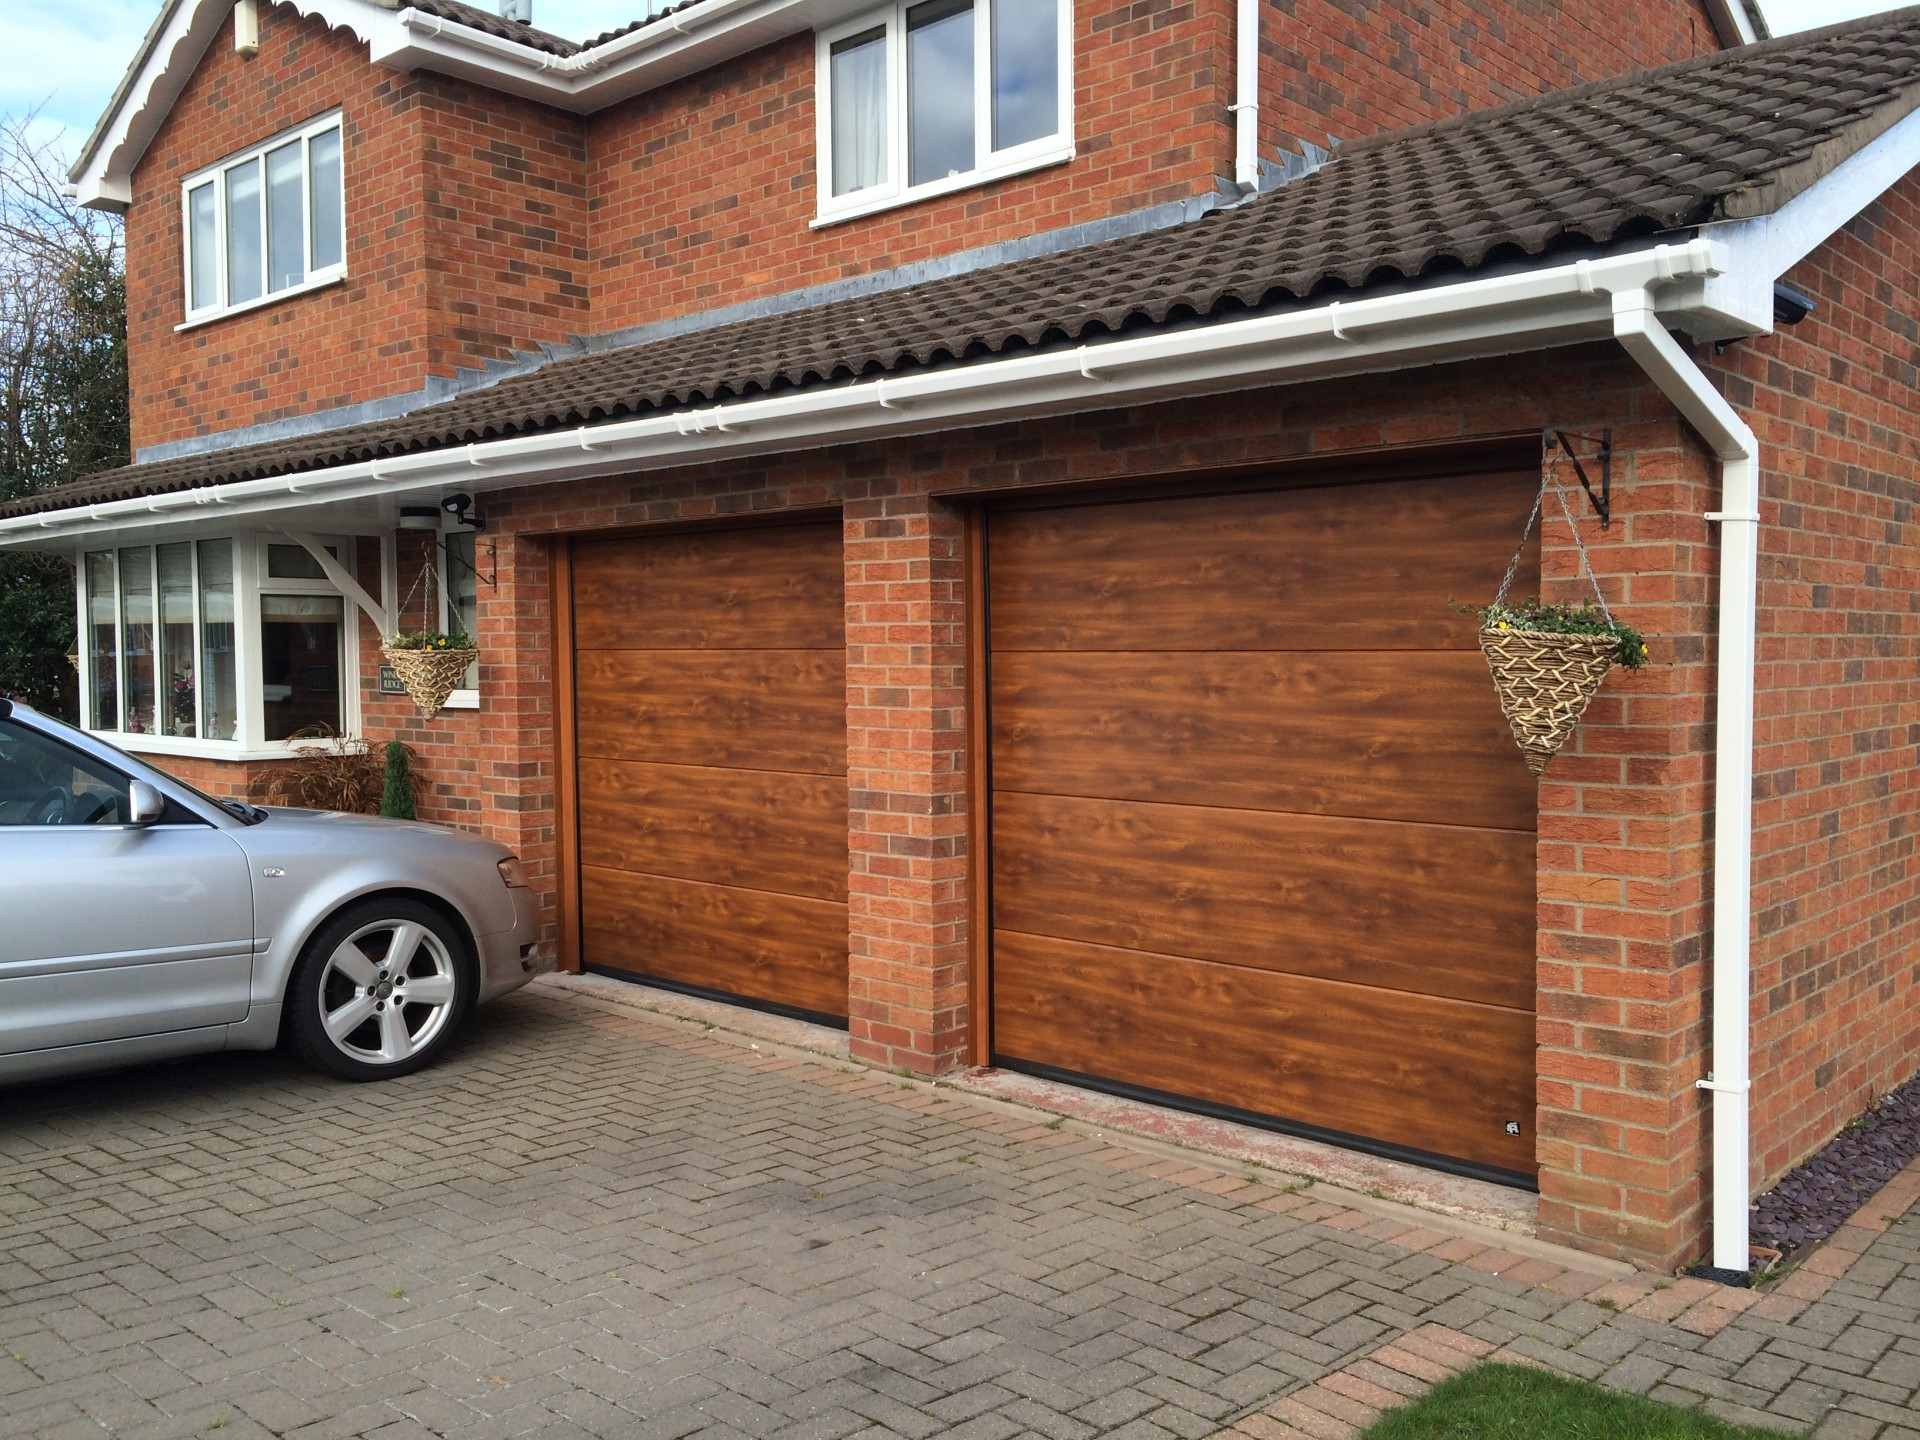 Sectional Garage Doors With Dog Door : Adding warmth to your home